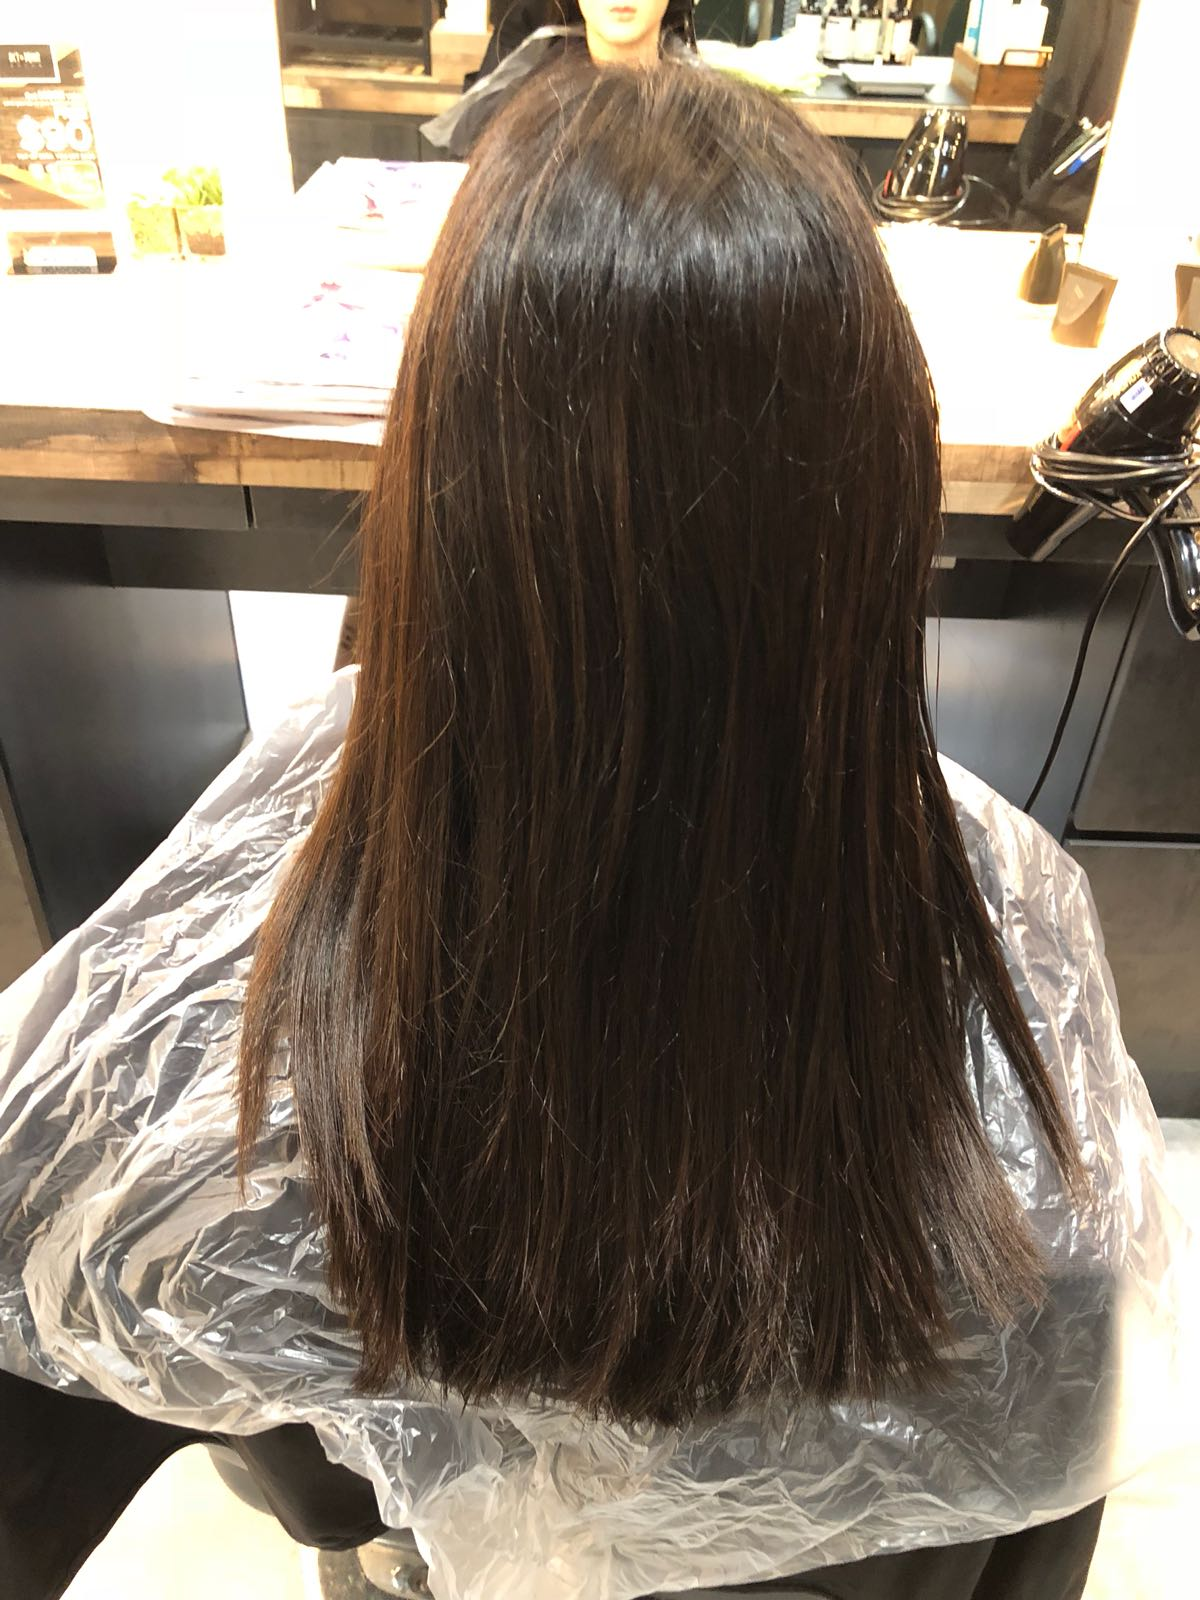 Fine and Thin Hair Suitable for Paimore Grats Perm